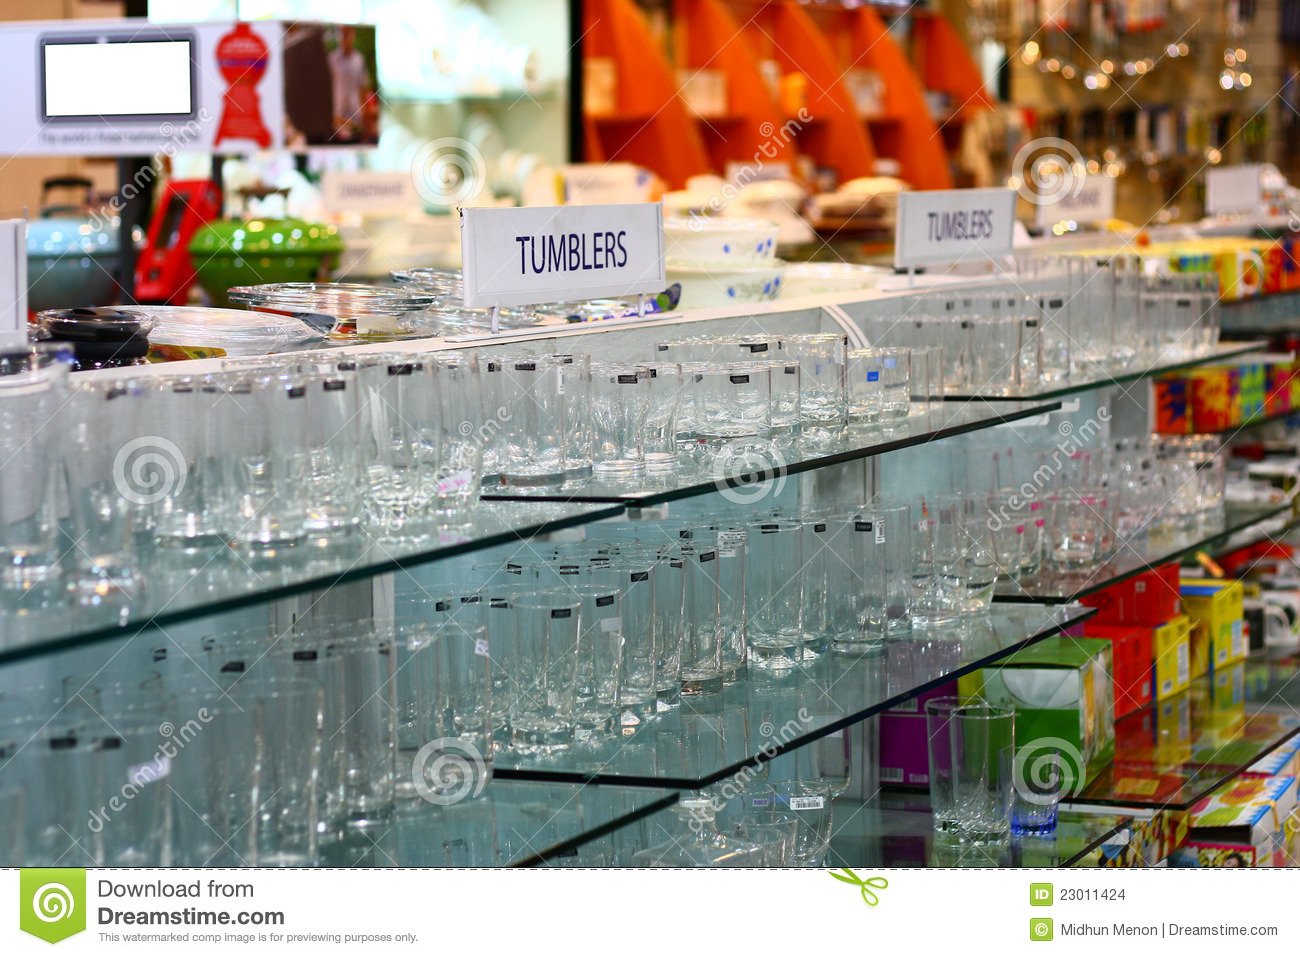 Home Needs retail store for home needs stock images - image: 23011424